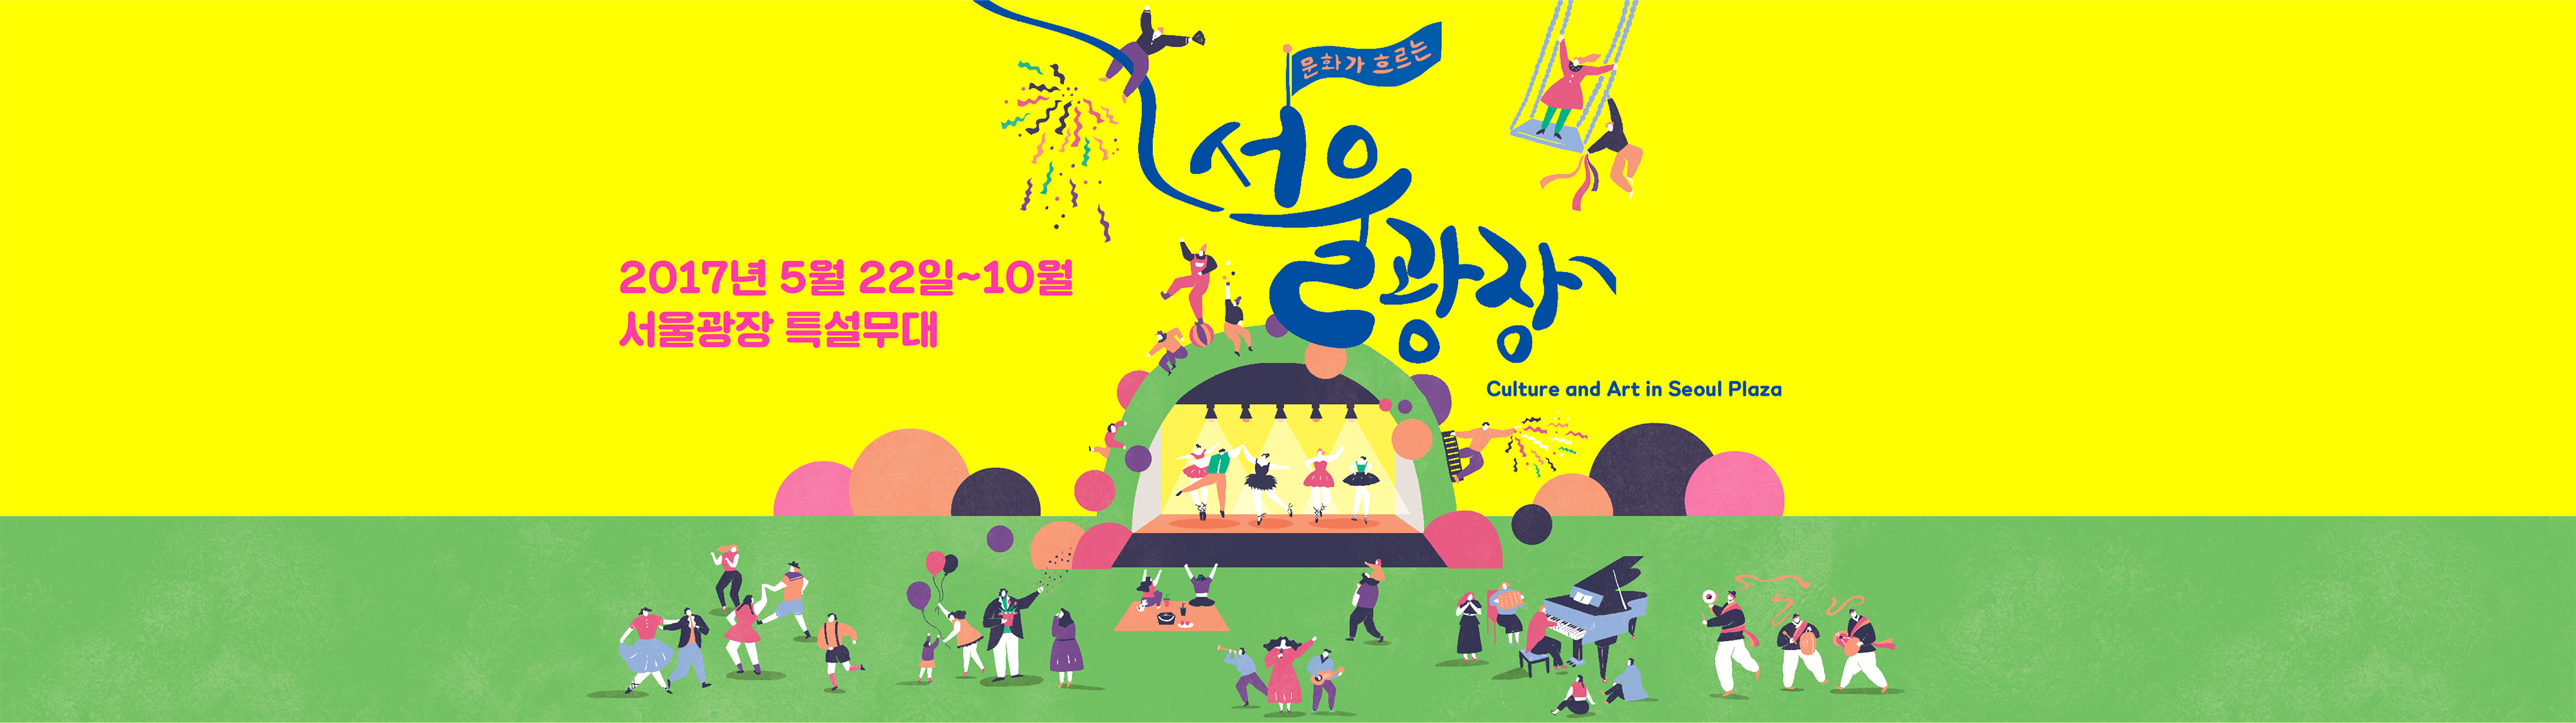 2017 Culture and Art in Seoul Plaza